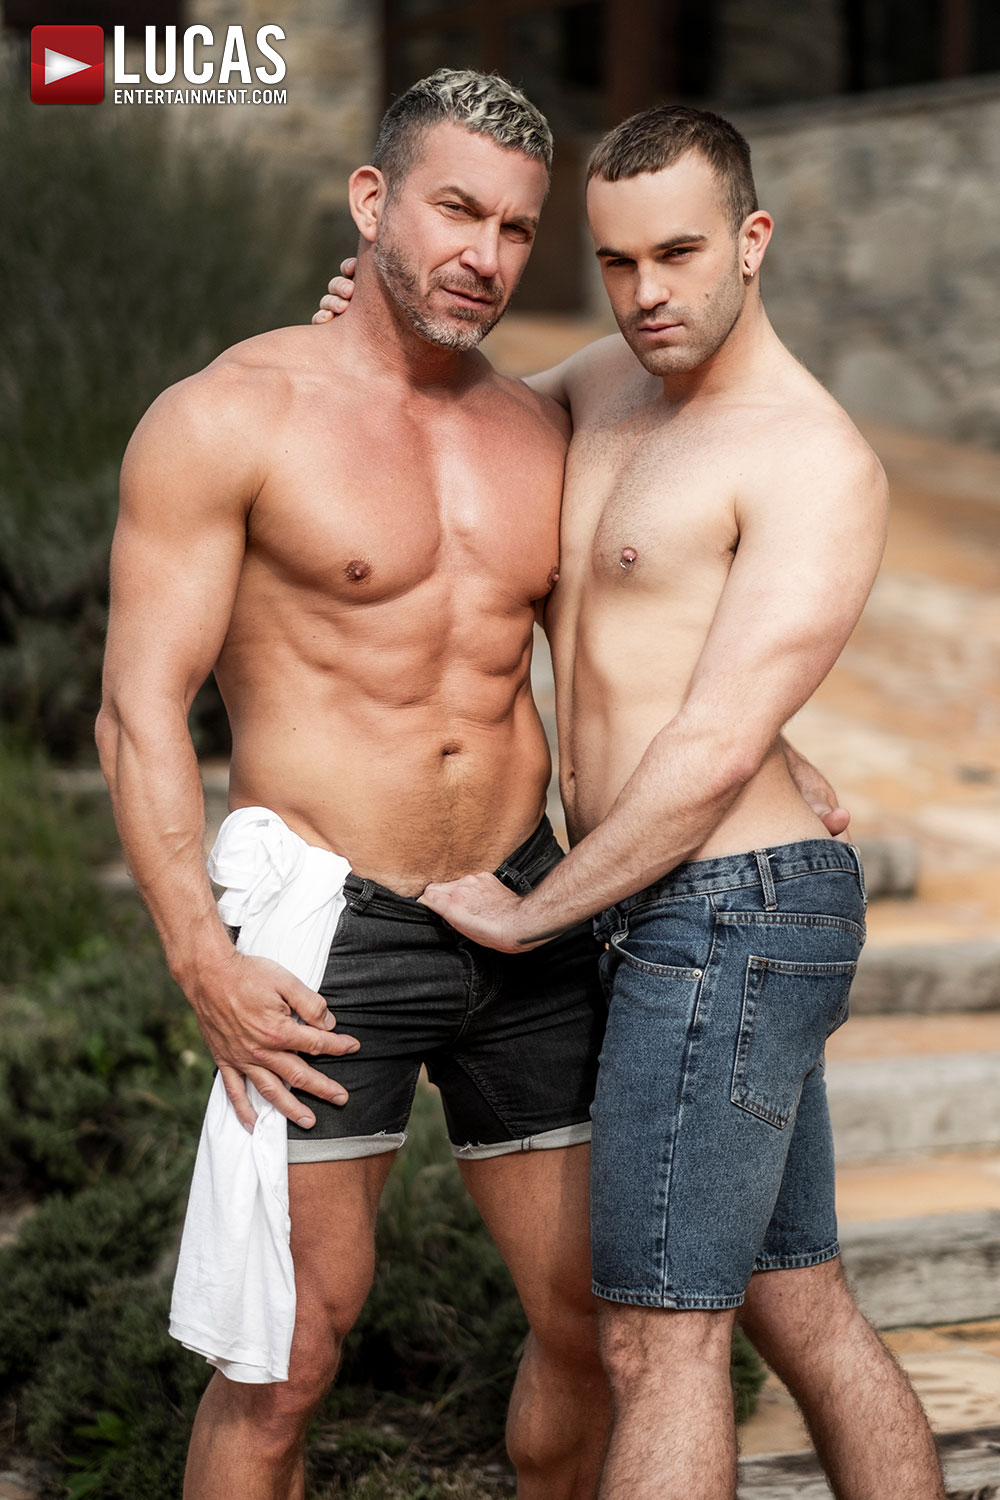 Jackson Radiz Submits To Alpha-Daddy Tomas Brand - Gay Movies - Lucas Entertainment